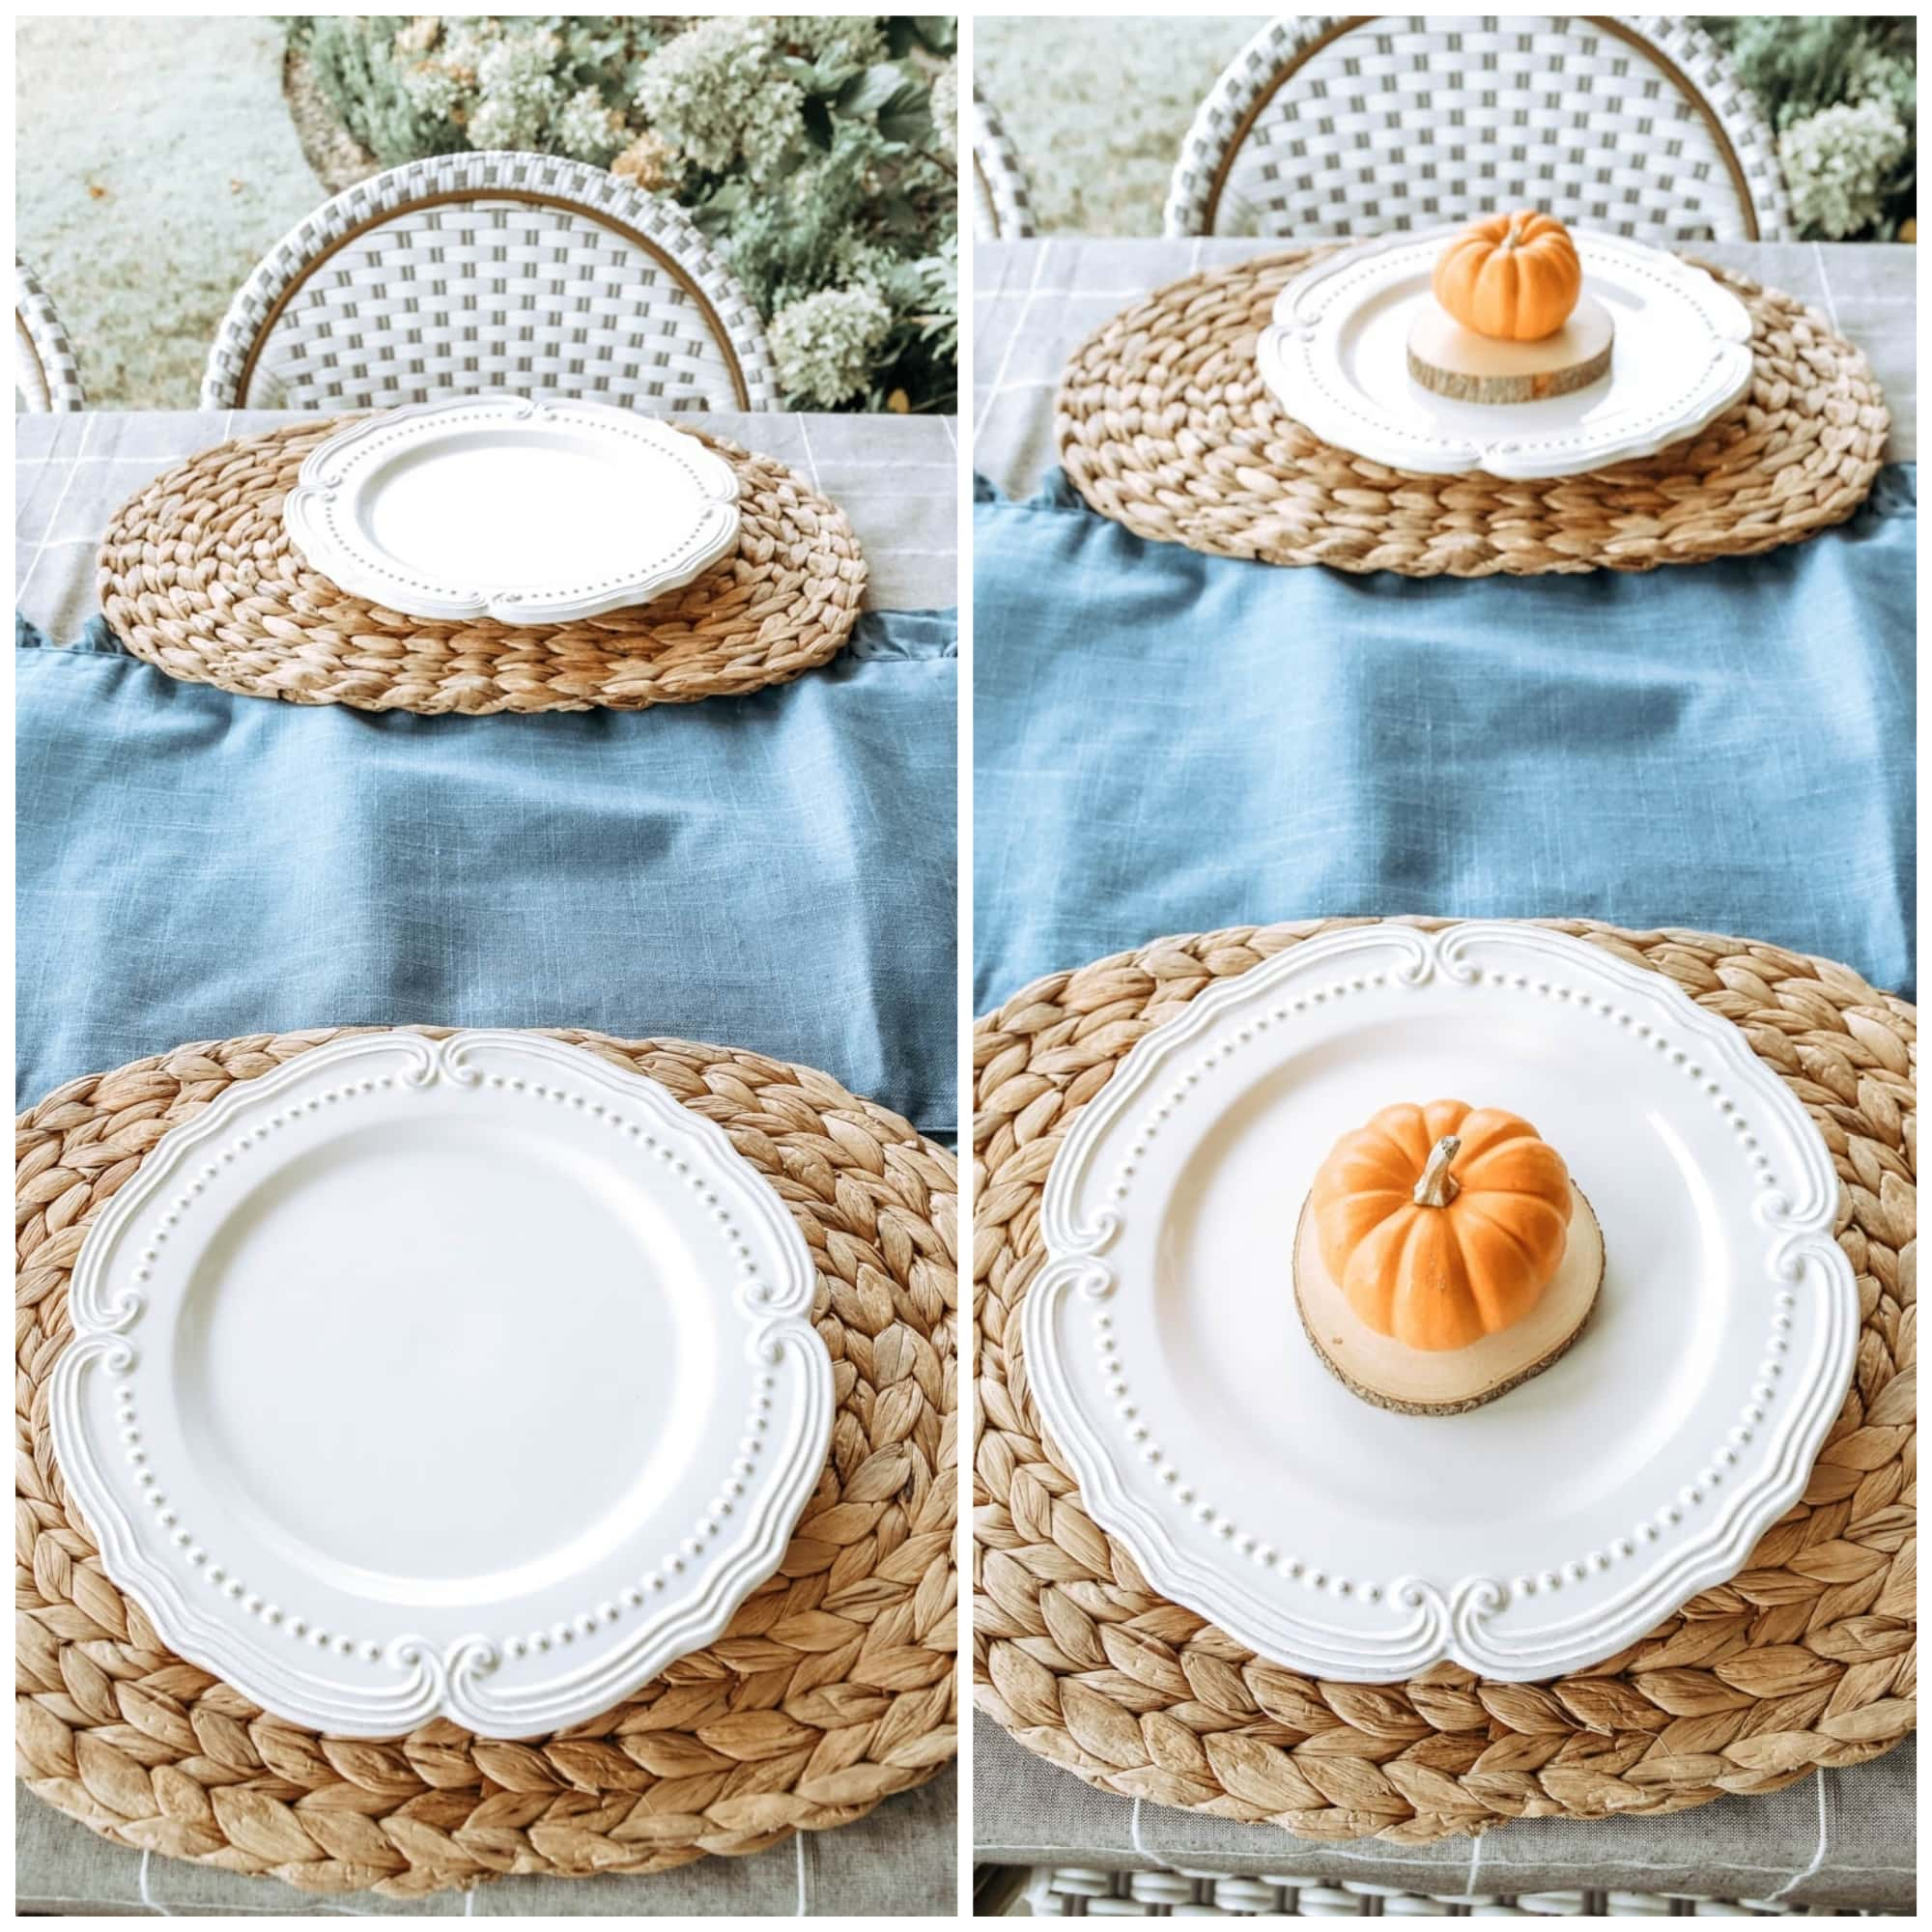 Use layers when setting a table. Mini pumpkins, white plates, seagrass table placemats. #ABlissfulNest #falltable #falldecor #thanksgiving